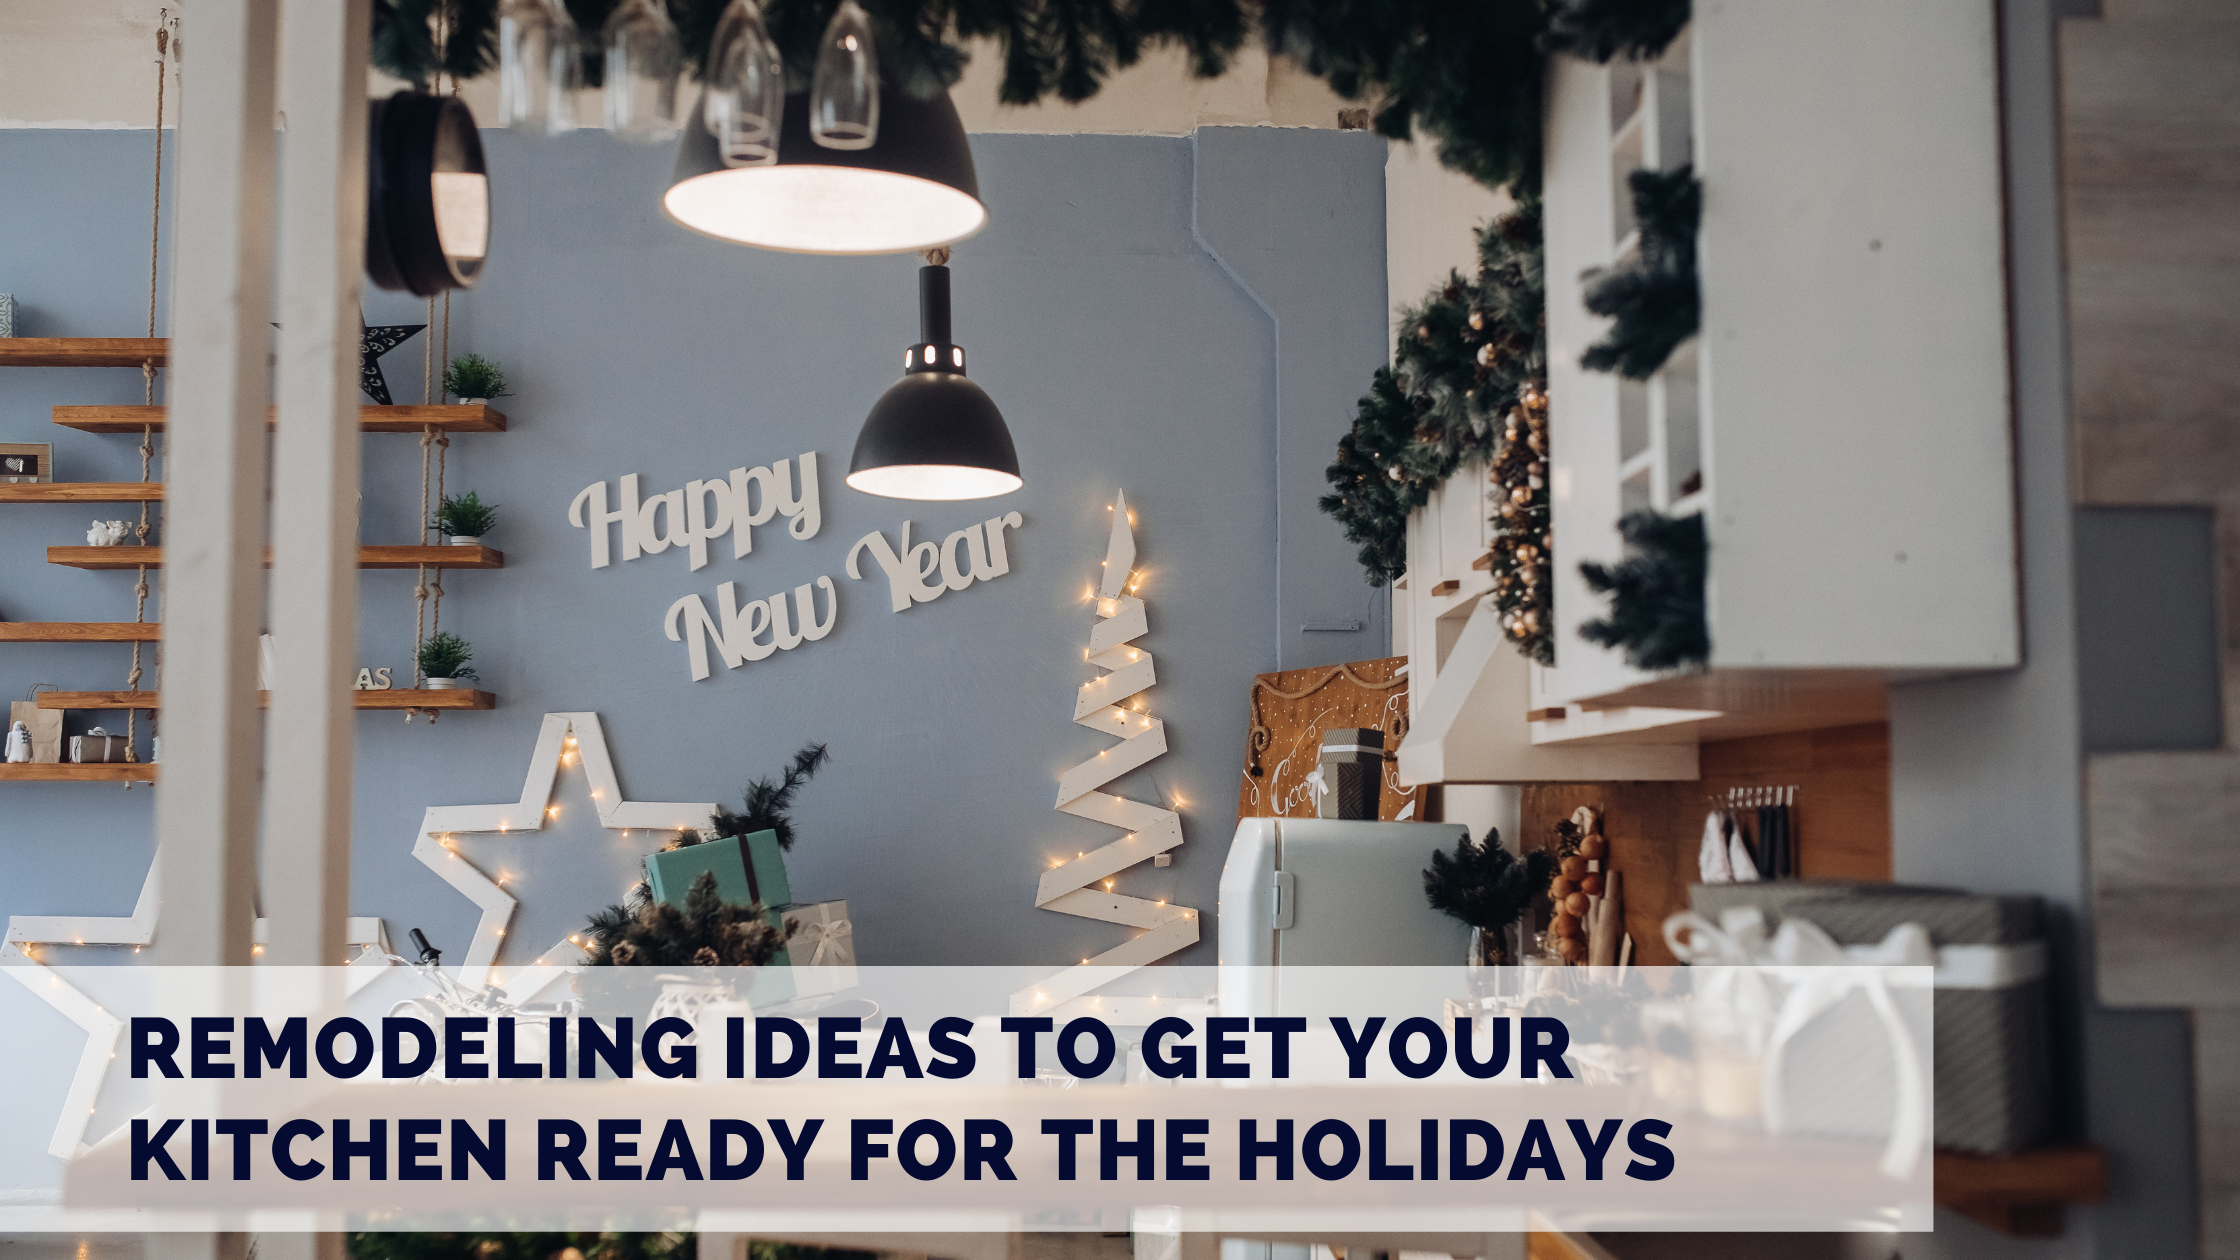 Remodeling Ideas to Get Your Kitchen Ready for the Holidays